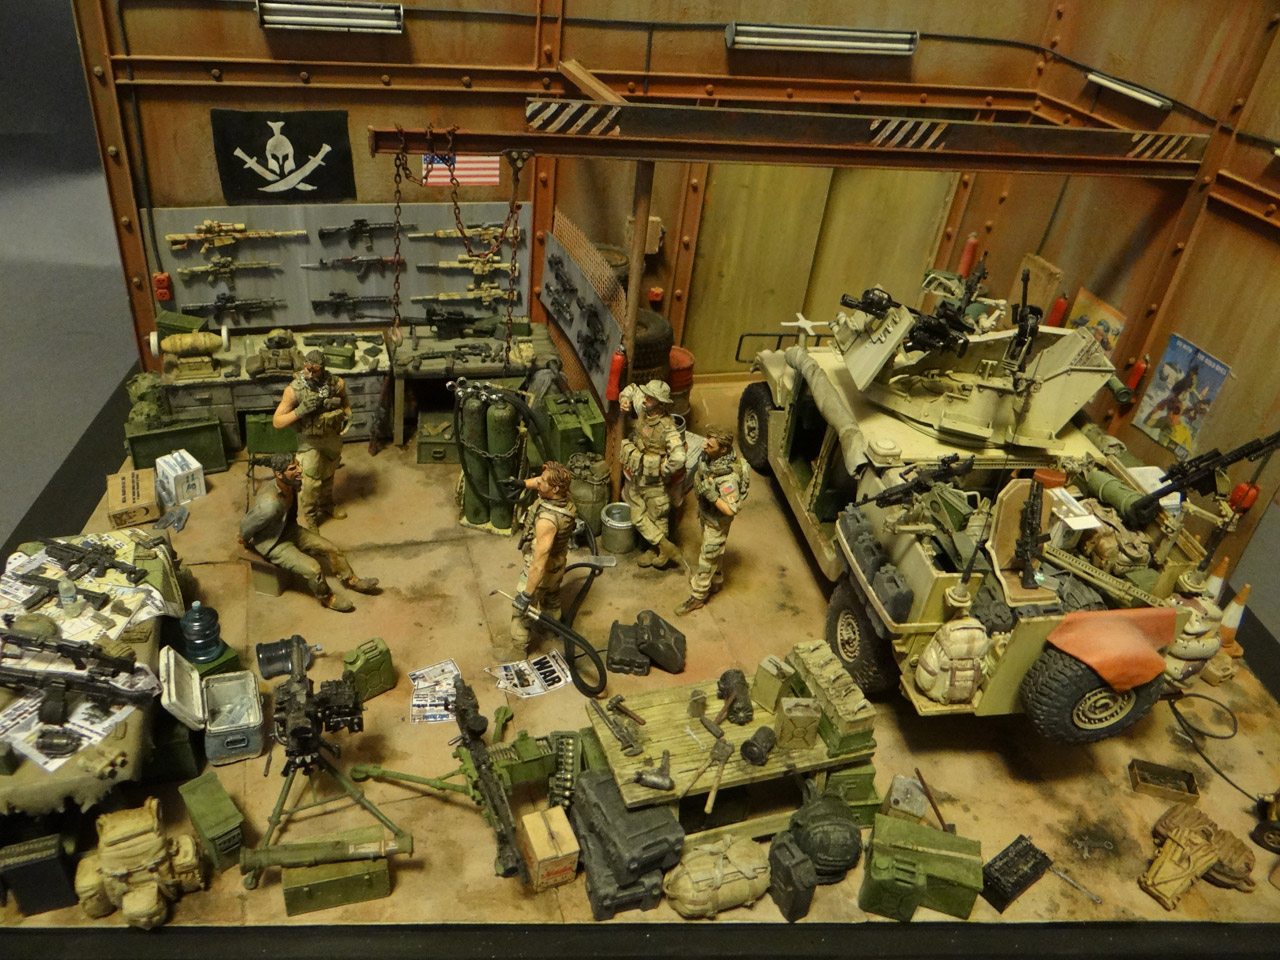 Dioramas and Vignettes: Enforcement to democracy, photo #16